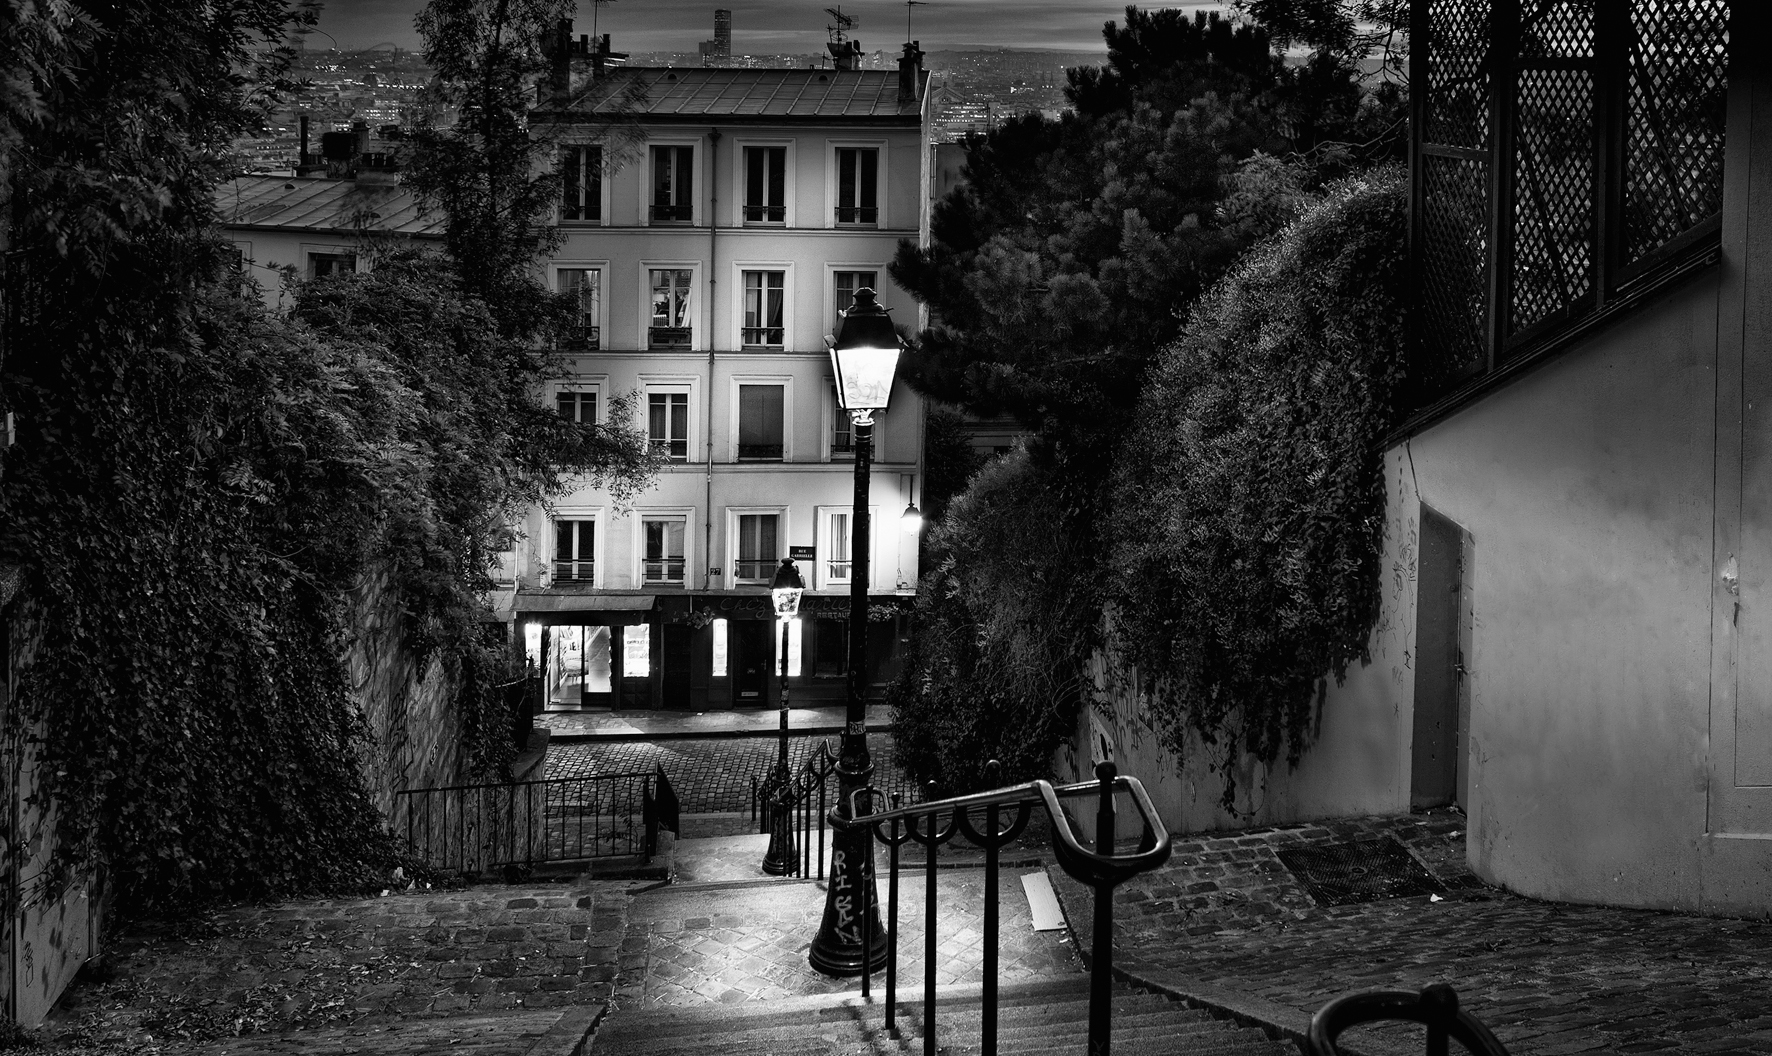 © Paris by Serge Ramelli, to be published by teNeues in March 2015, € 59,90,  www.teneues.com  . STEPS  OF MONTMARTRE,  Photo © 2015 Serge Ramelli and YellowKorner. All rights reserved.